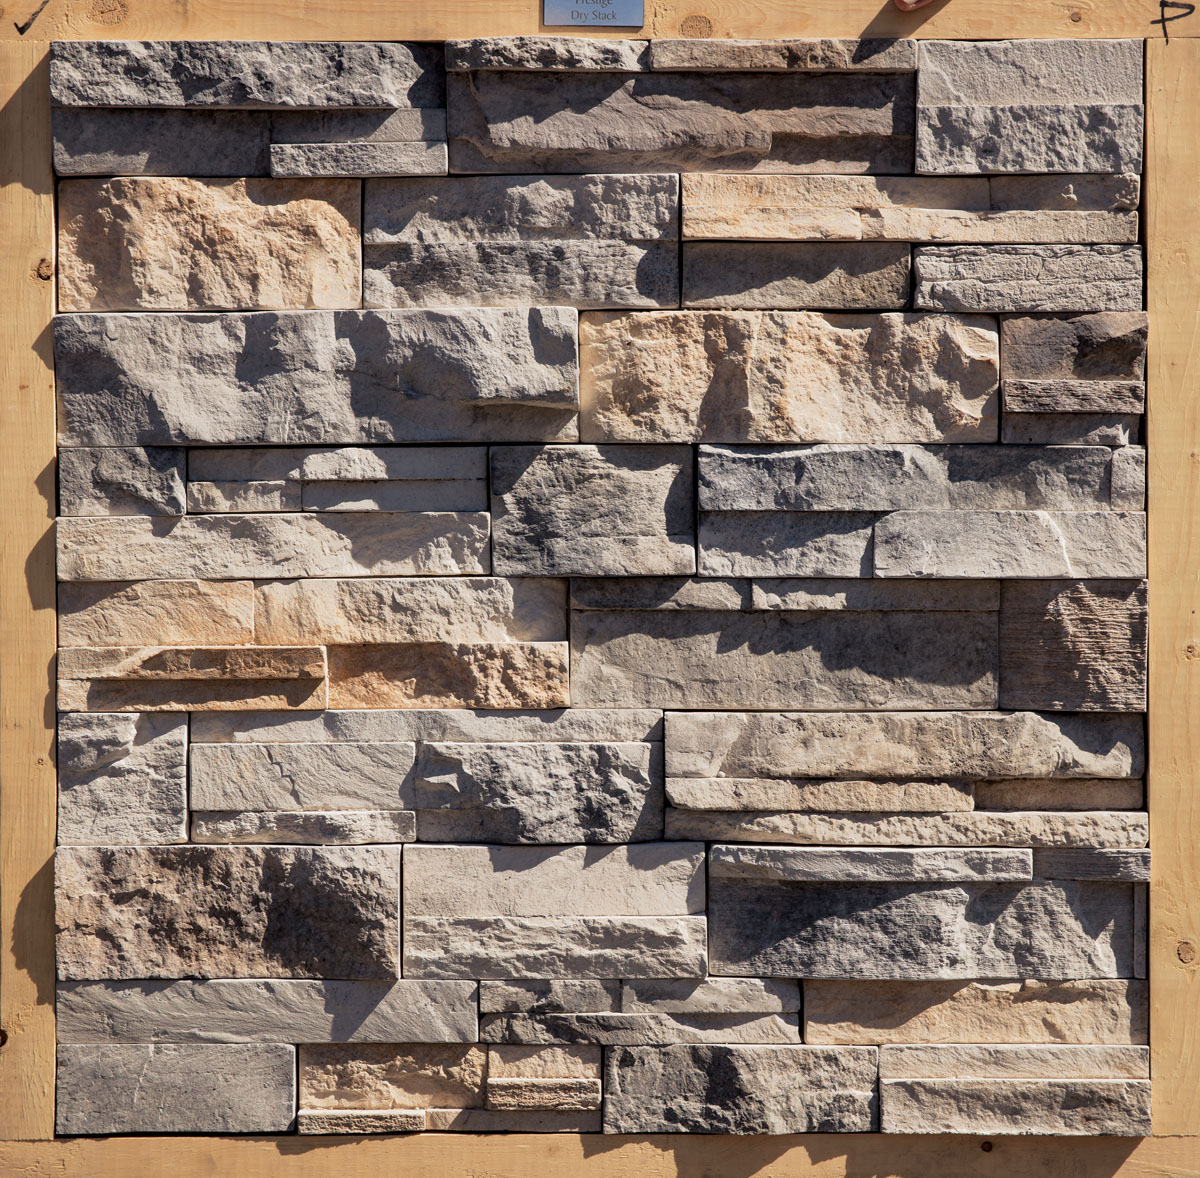 Dutch Quality Stone Drystack Sienna Flat Manufactured